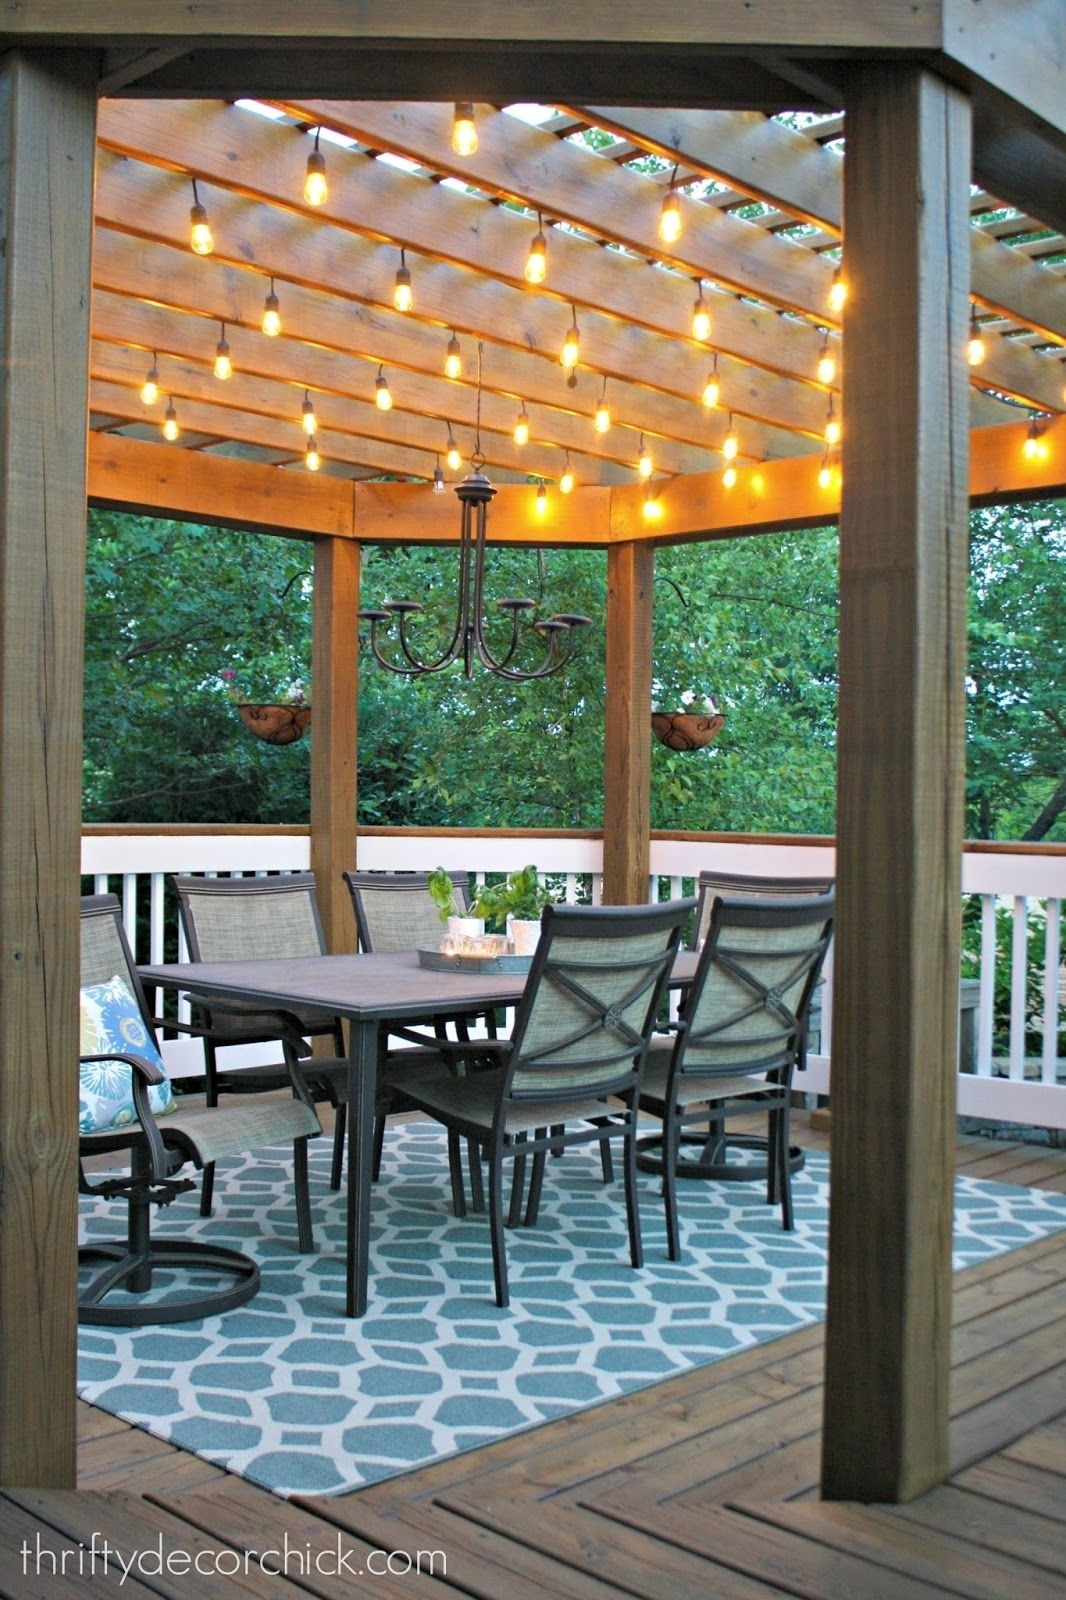 Our Beautiful Outdoor Dining Room | Diy New Home Remodeling In Outdoor Lanterns For Deck (View 20 of 20)